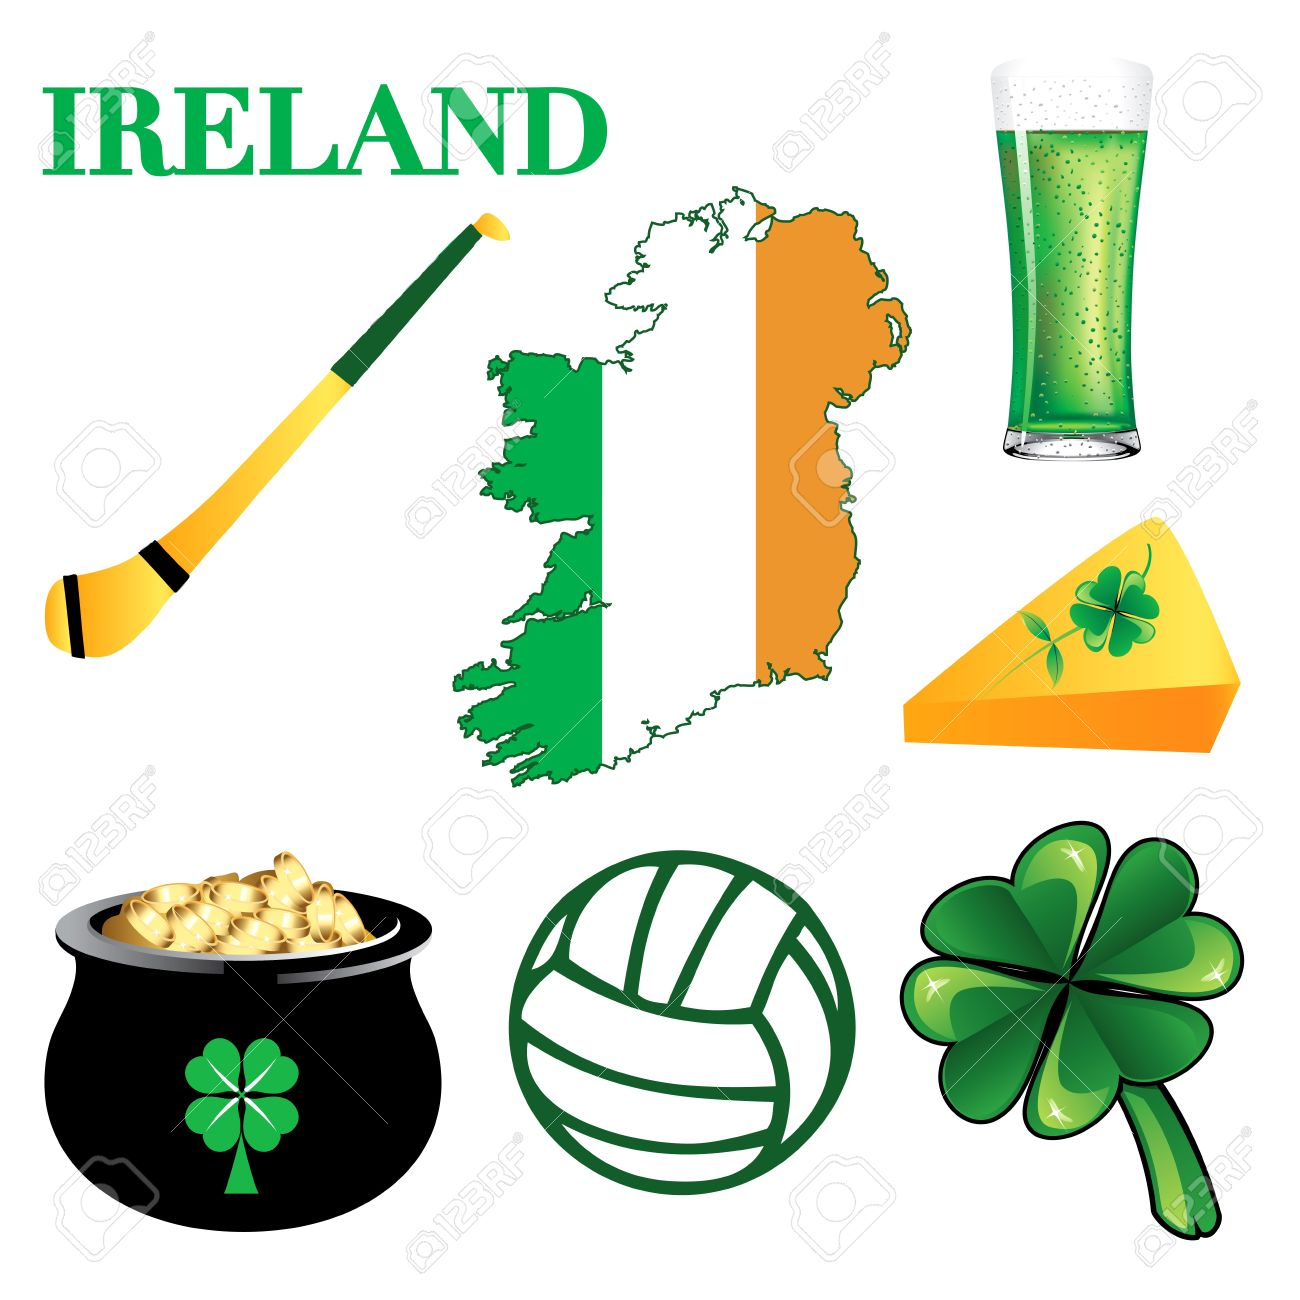 Illustration For Ireland. Irish Button Icons Royalty Free Cliparts.